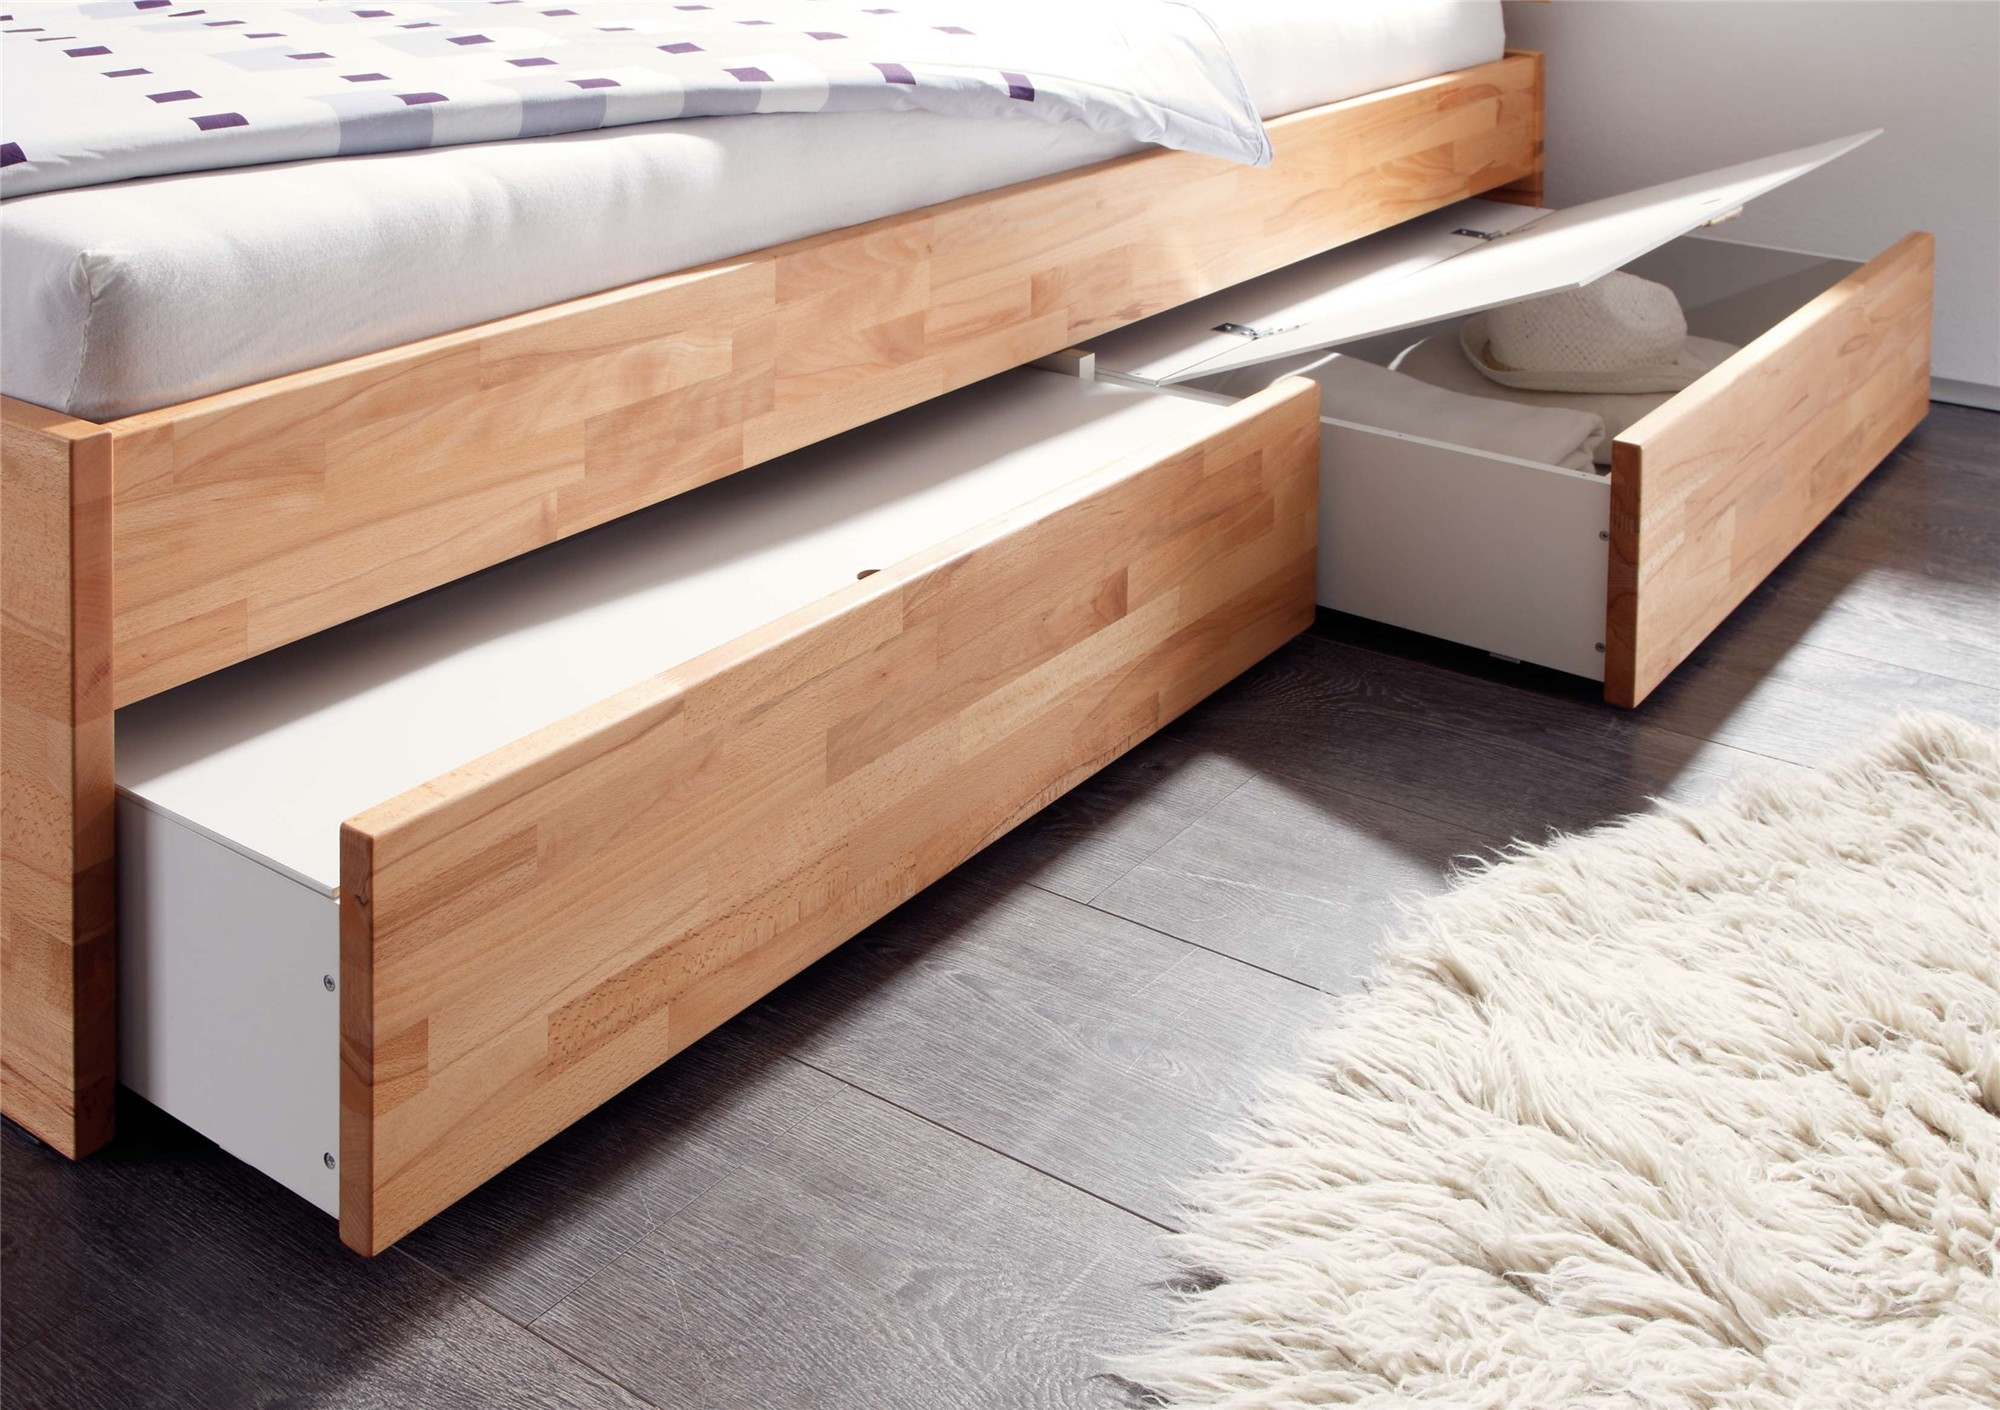 loaf with drawer drawers bed products detail storage woody woo wooden copy be